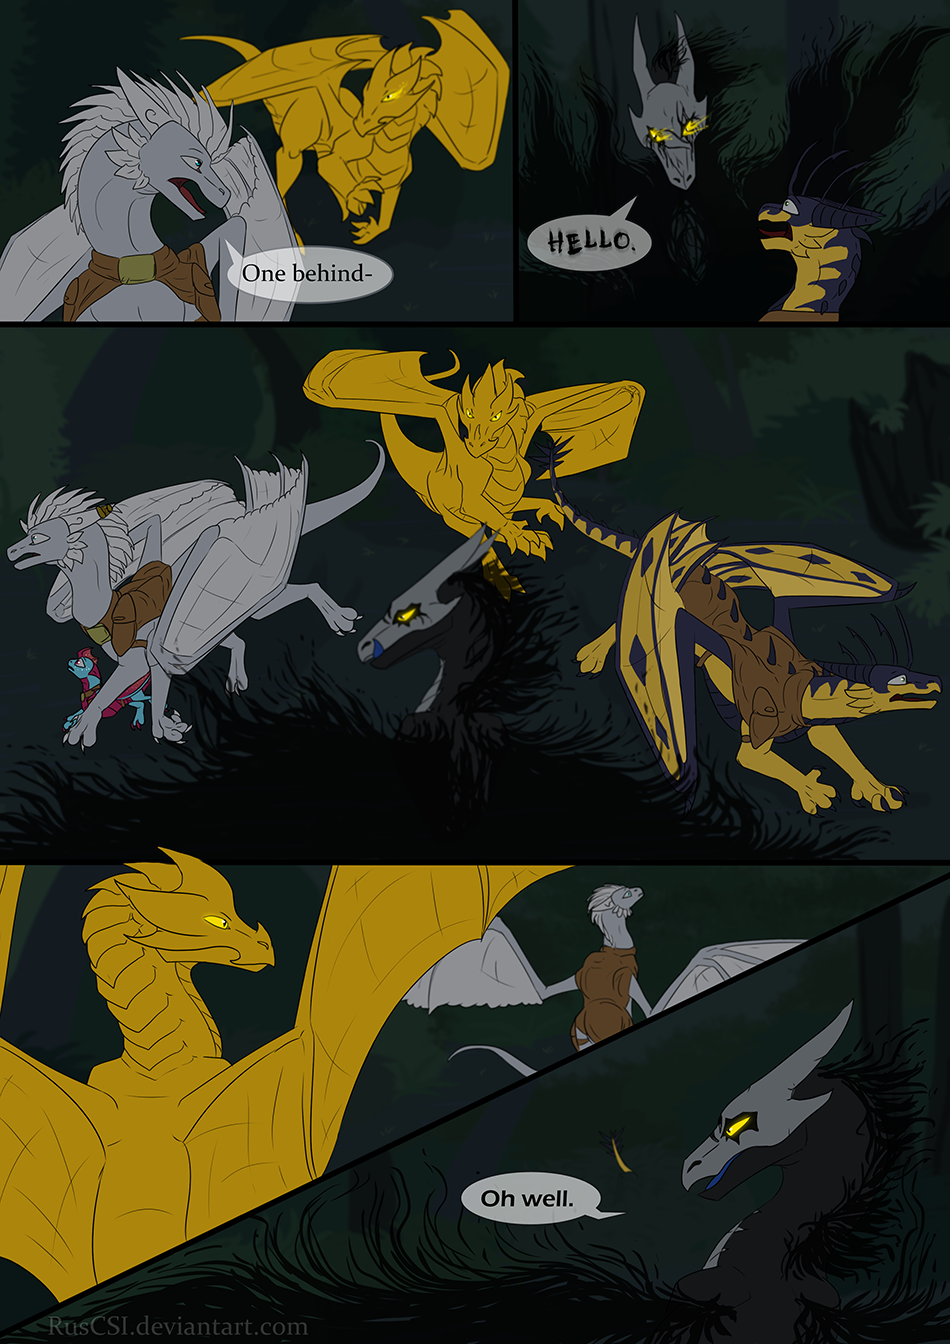 Courage of the cowardly dragon - page 38